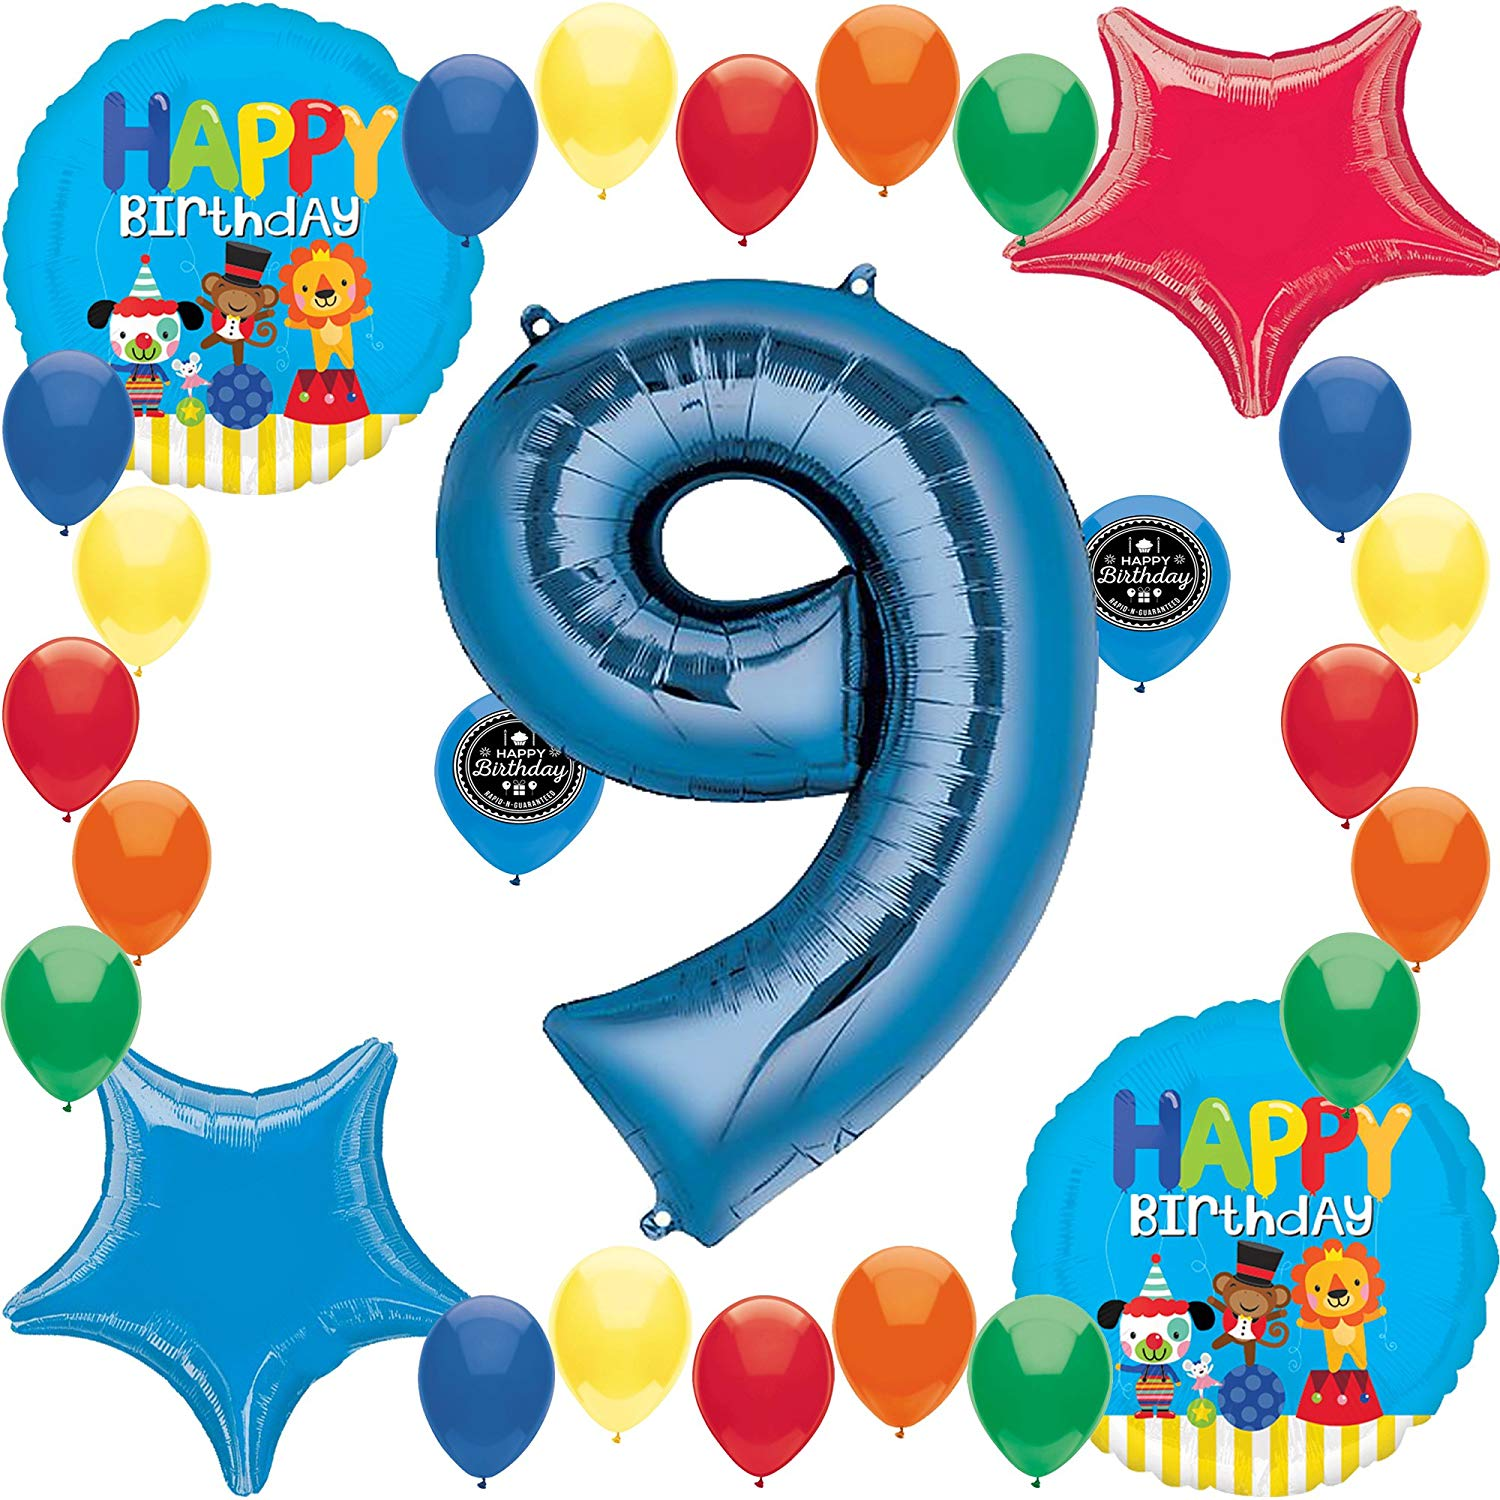 Circus Carnival Friends Party Supplies Fun Colorful Happy Birthday Balloon  Decoration Bundle (9th Birthday).